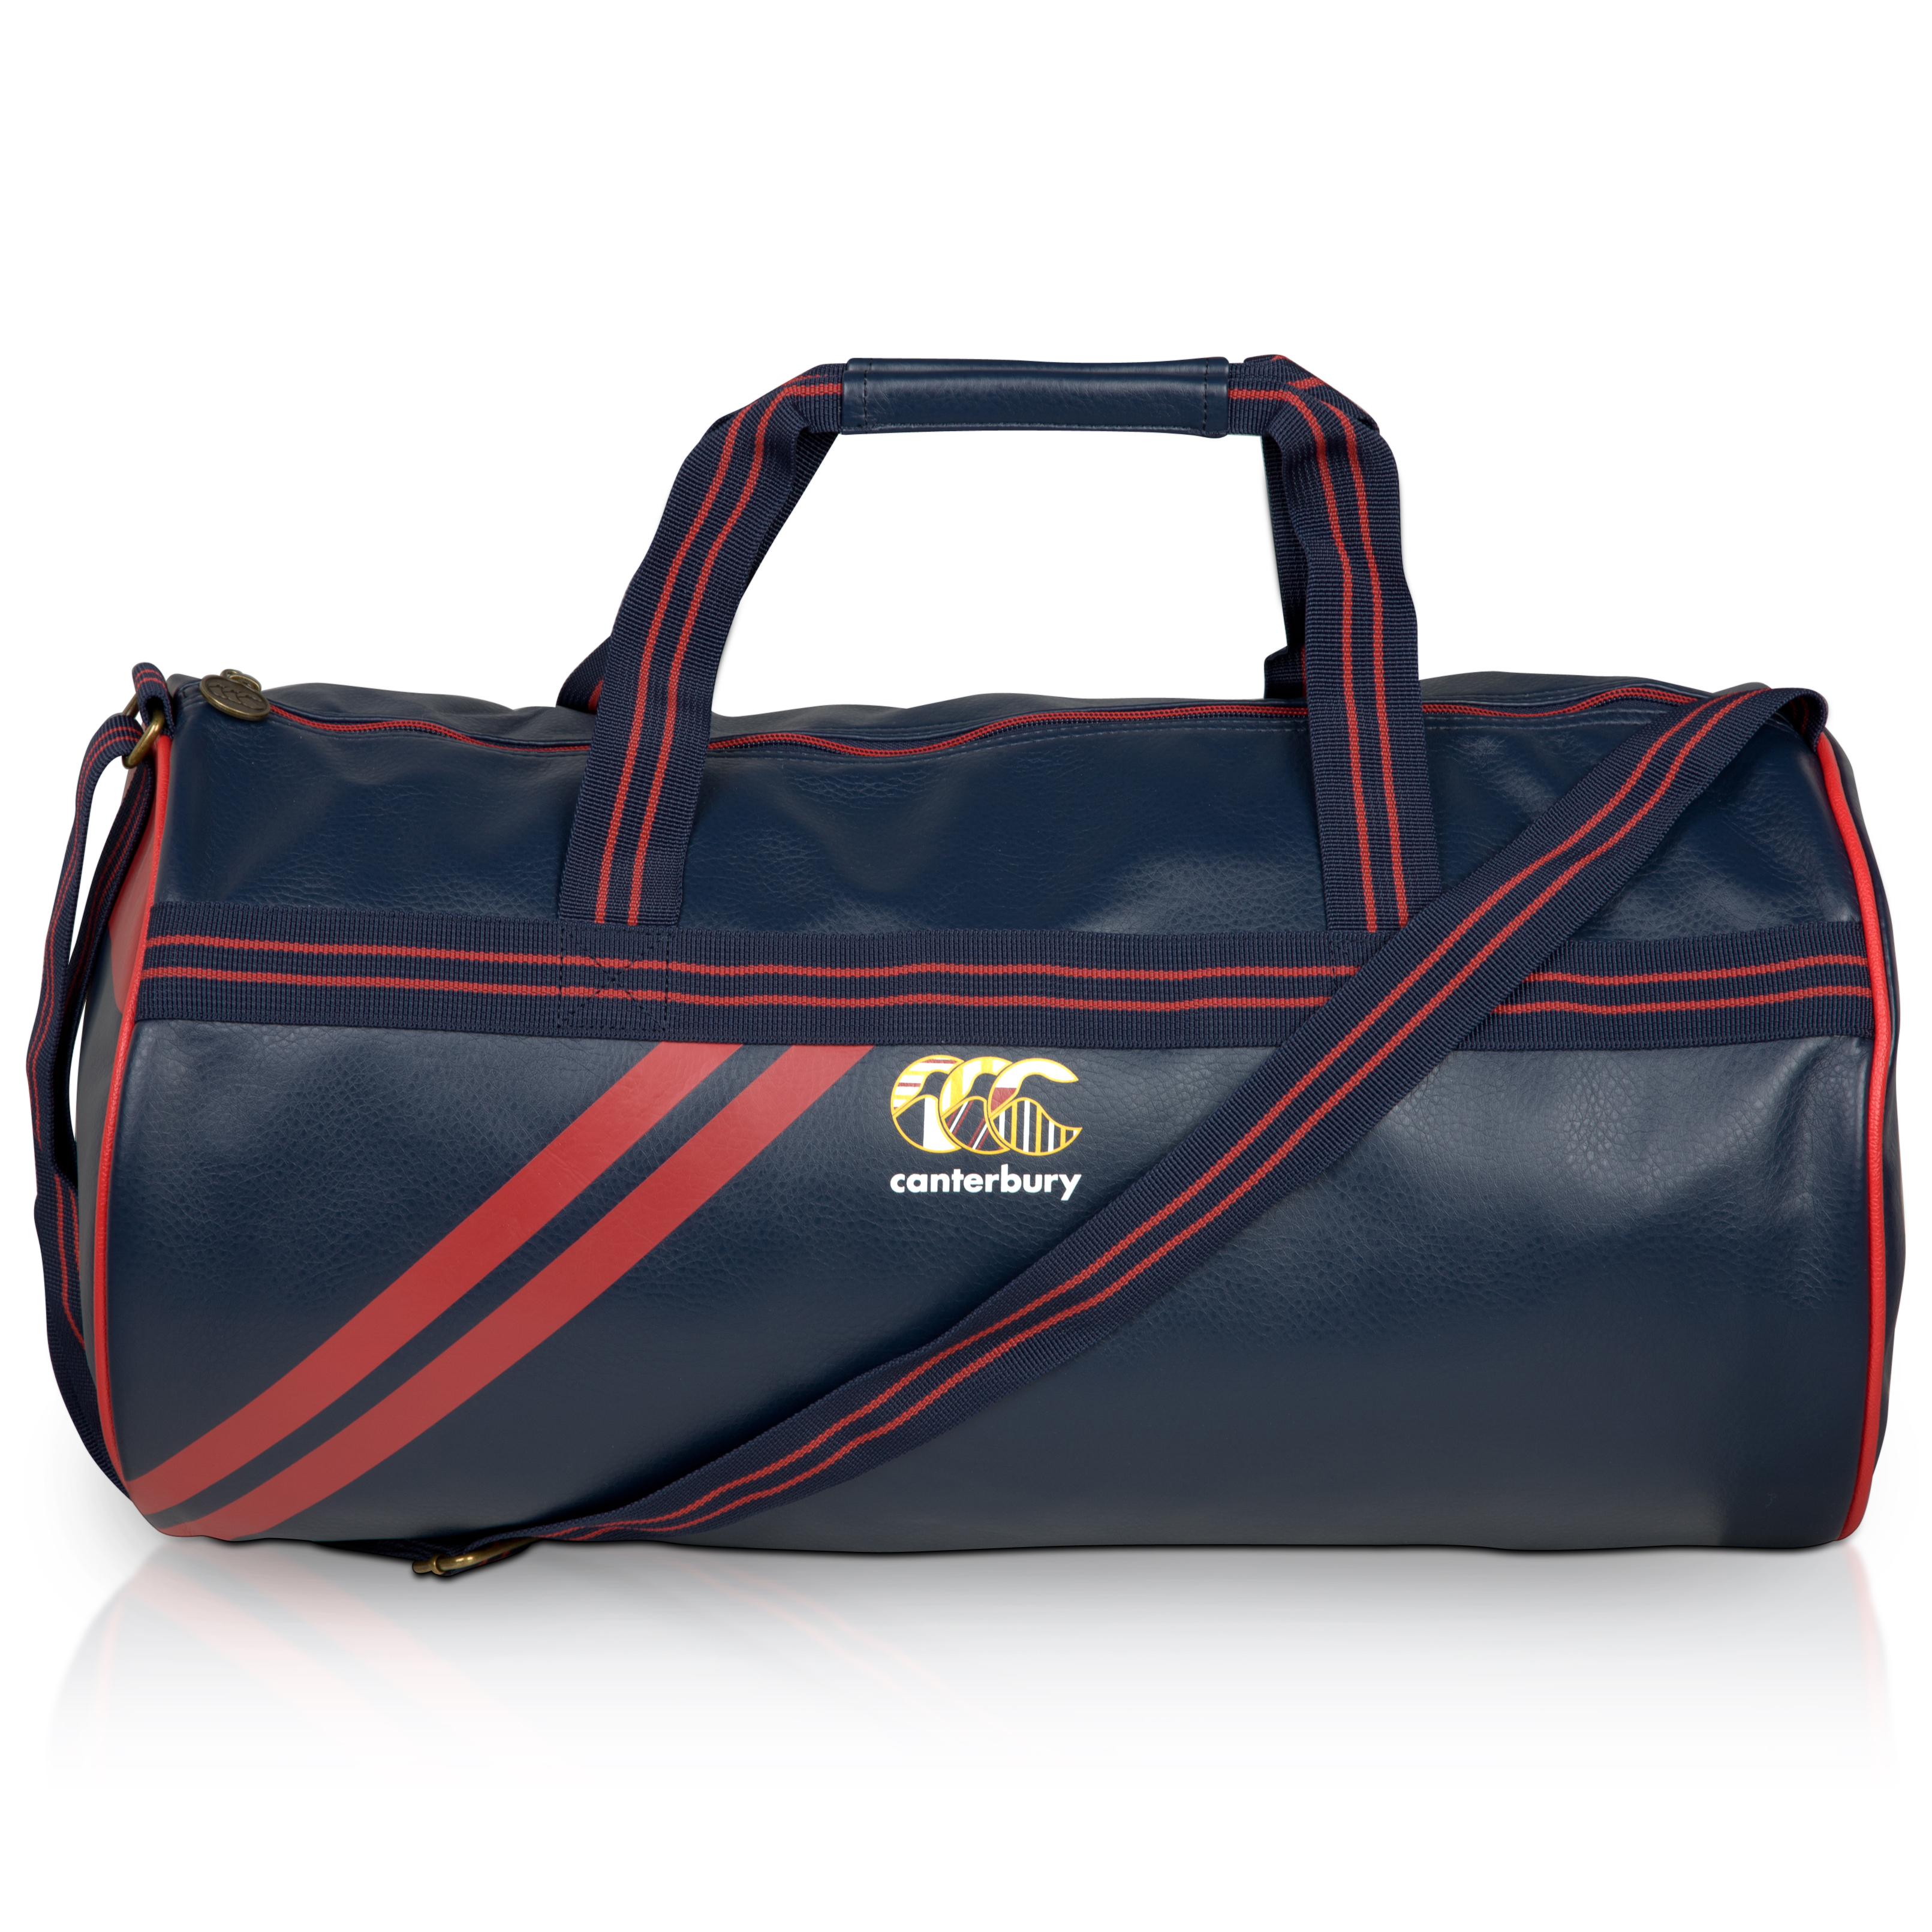 Canterbury Uglies Barrel Bag - Navy/Flag Red/Gold. for 30€